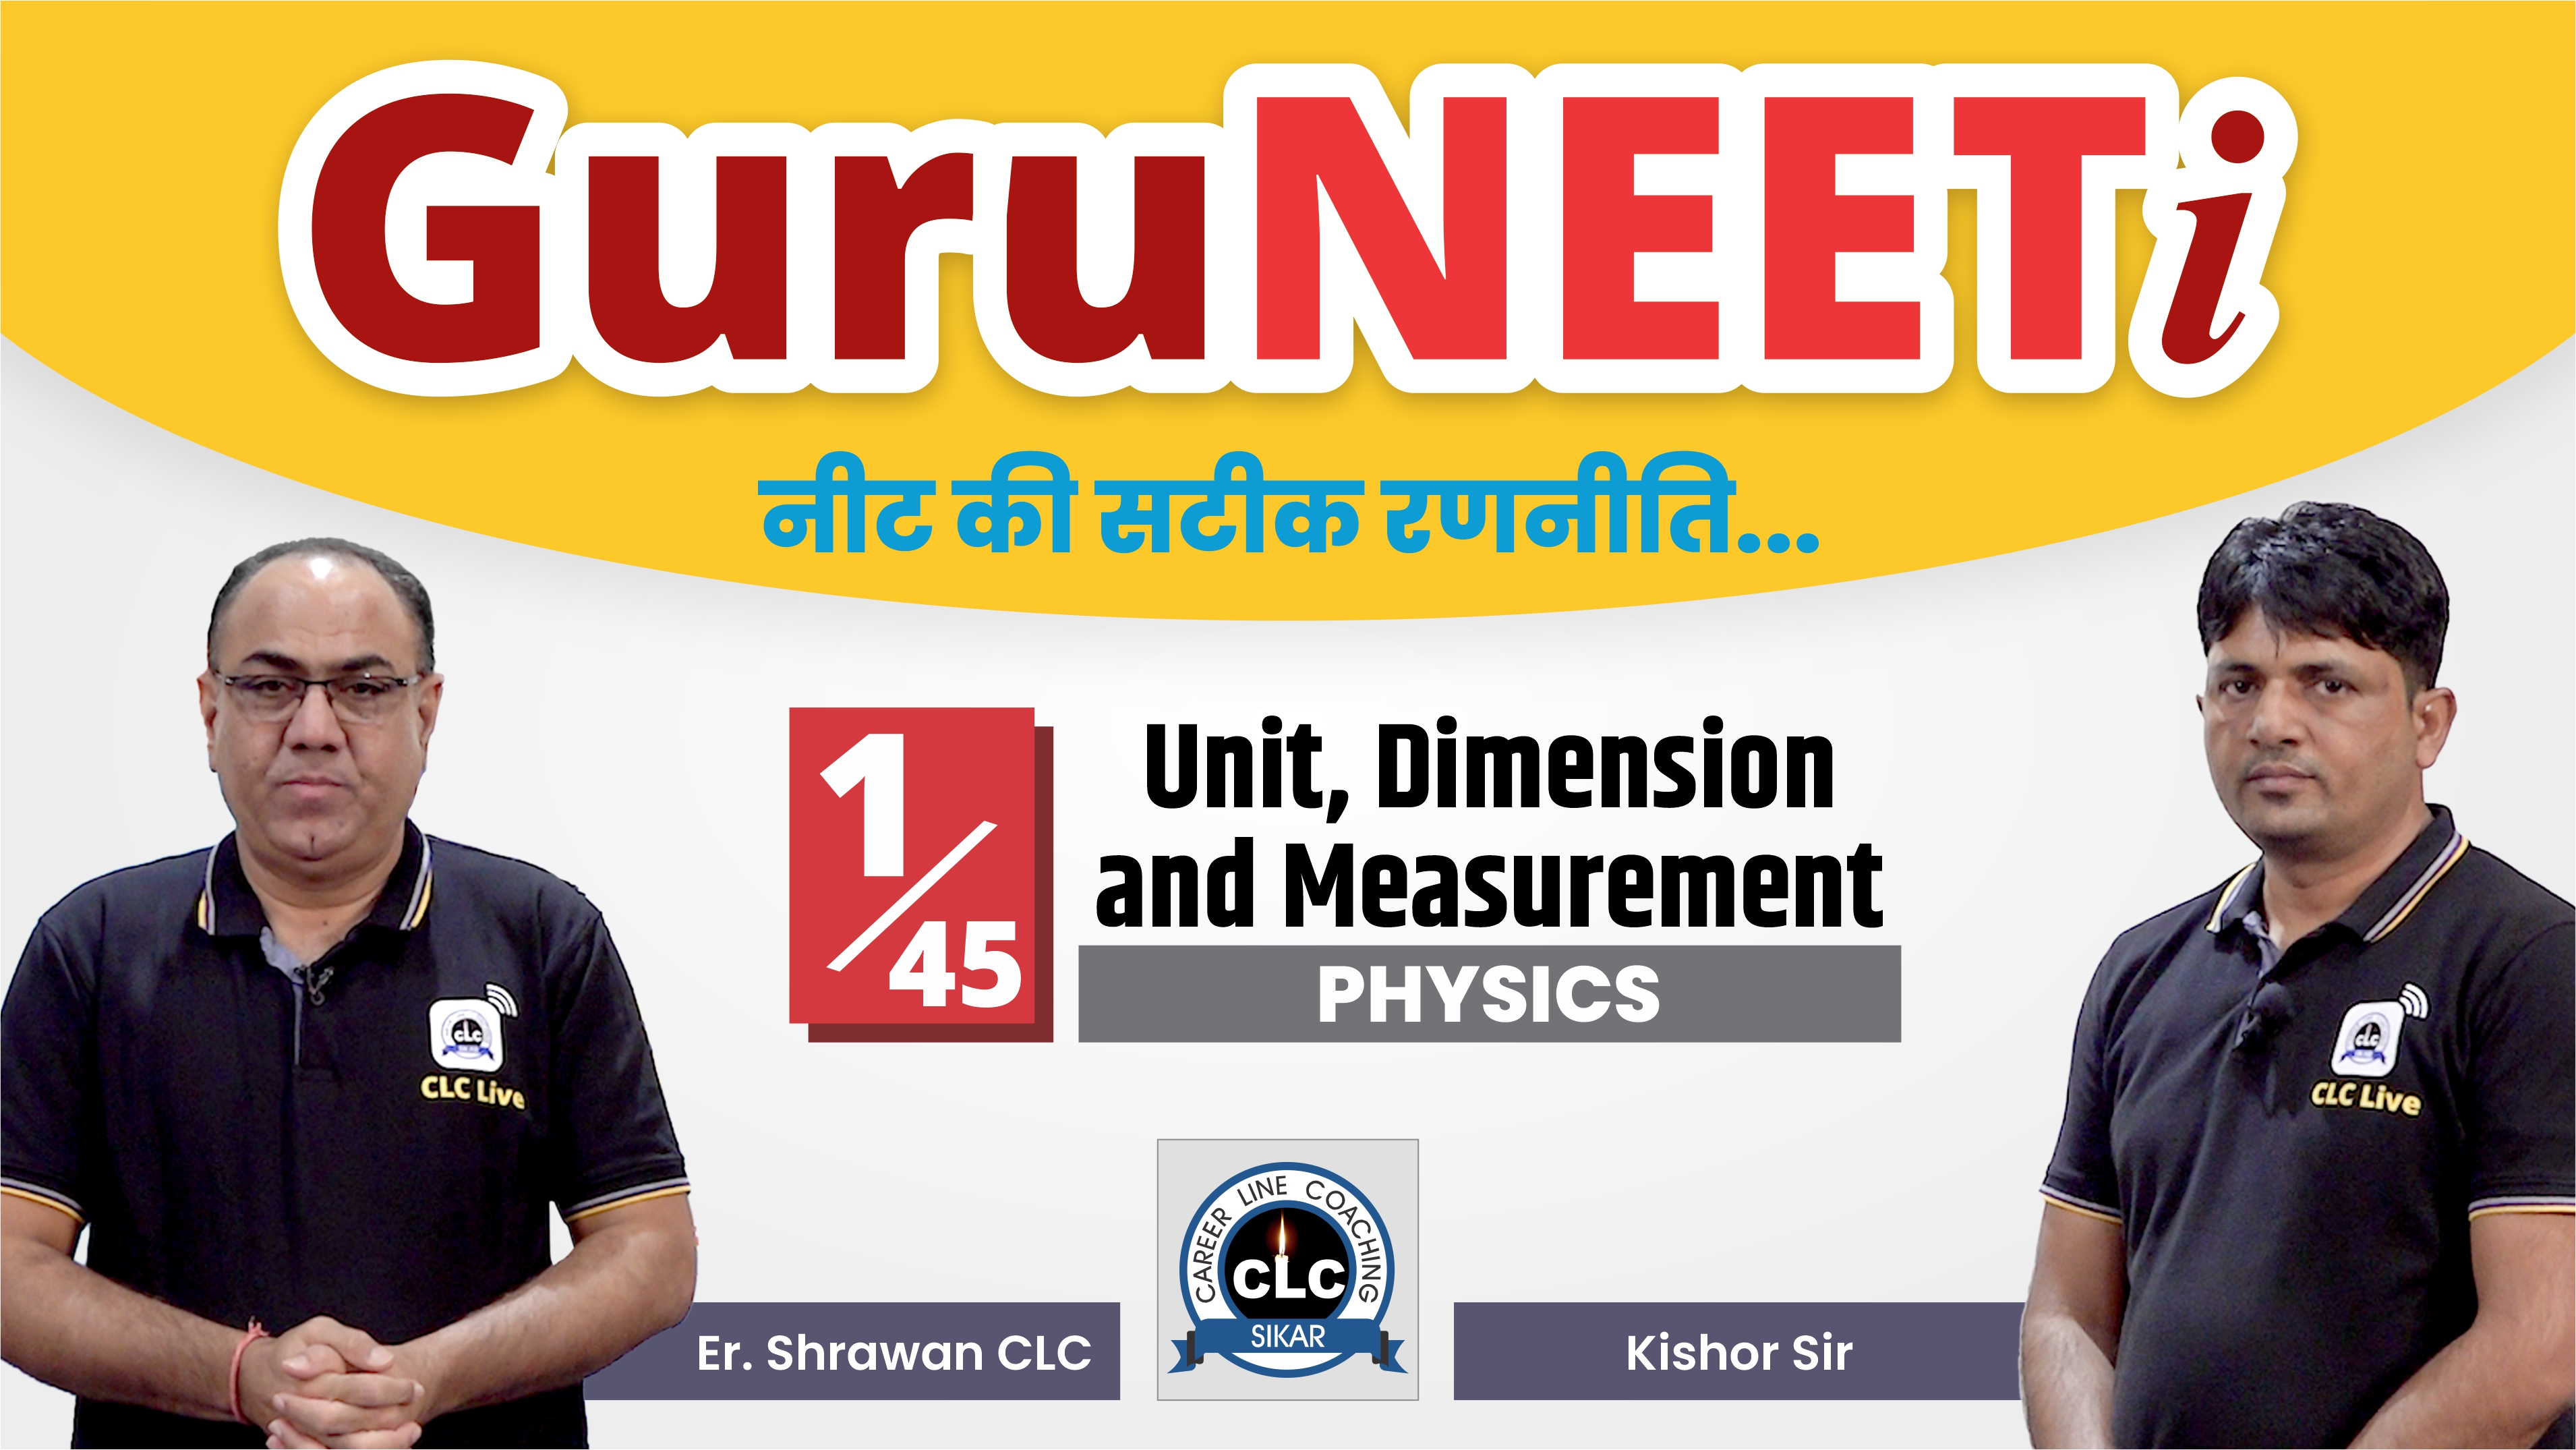 1/45 Physics || GuruNEETi || 180vs180 || CLC